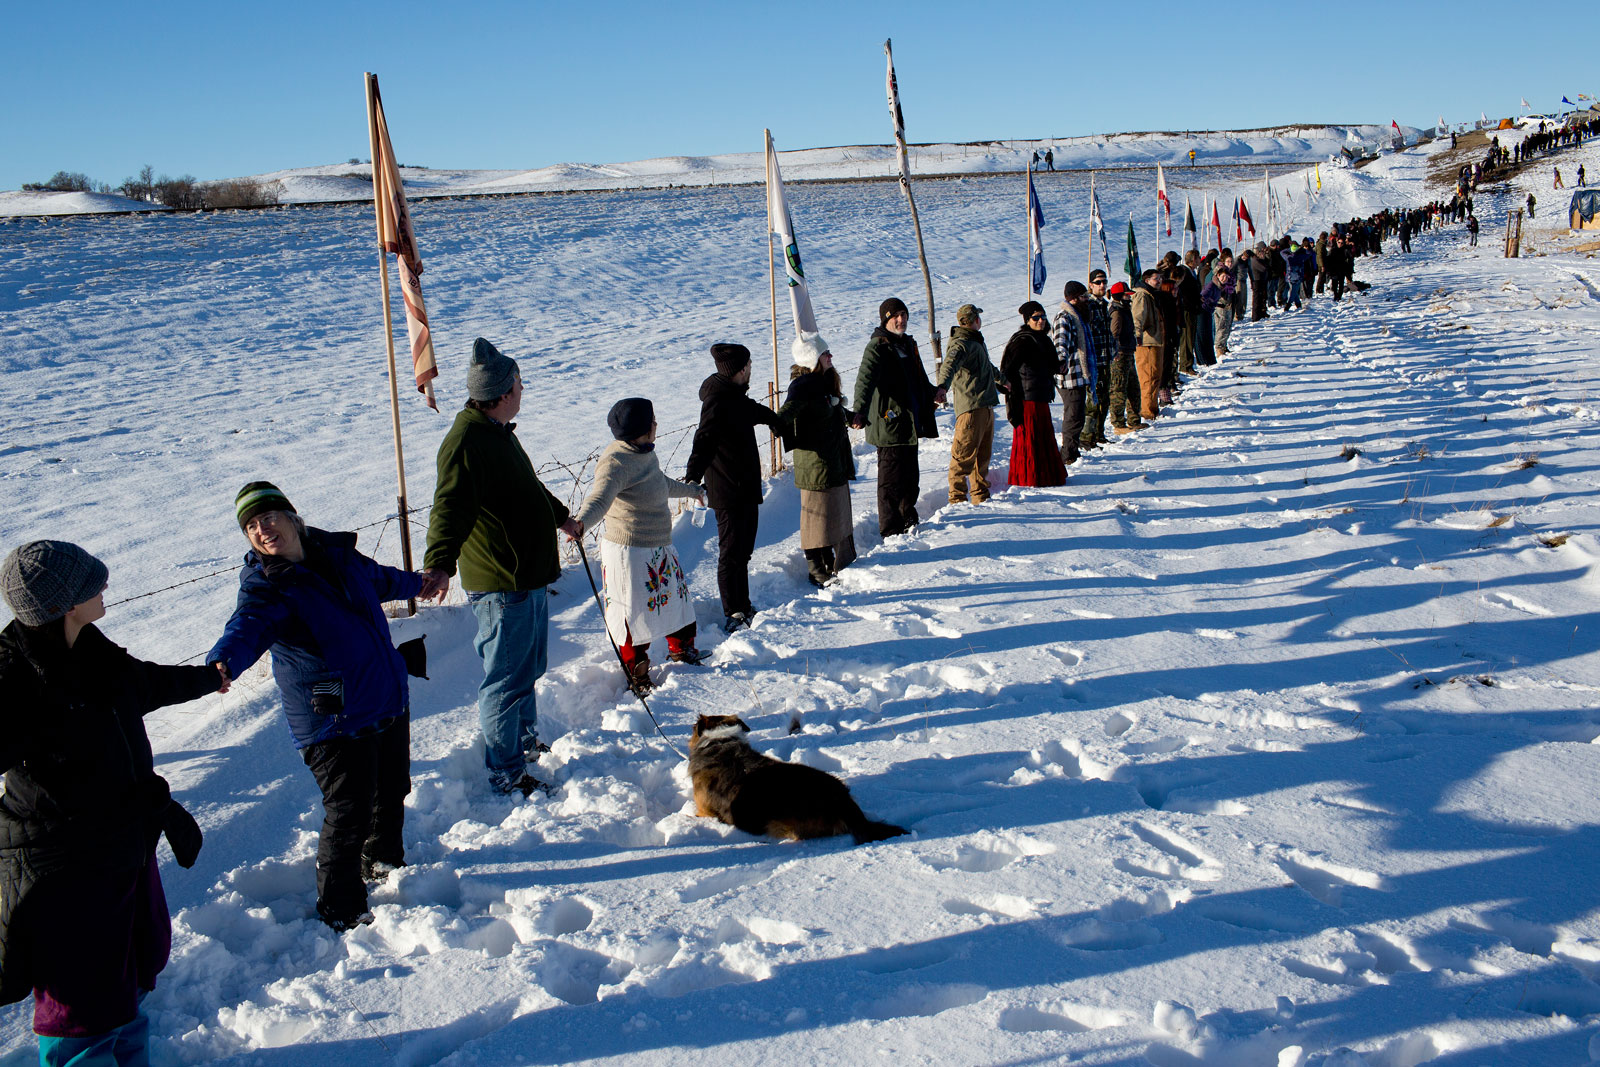 A line of people holding hands in the snow, with flags